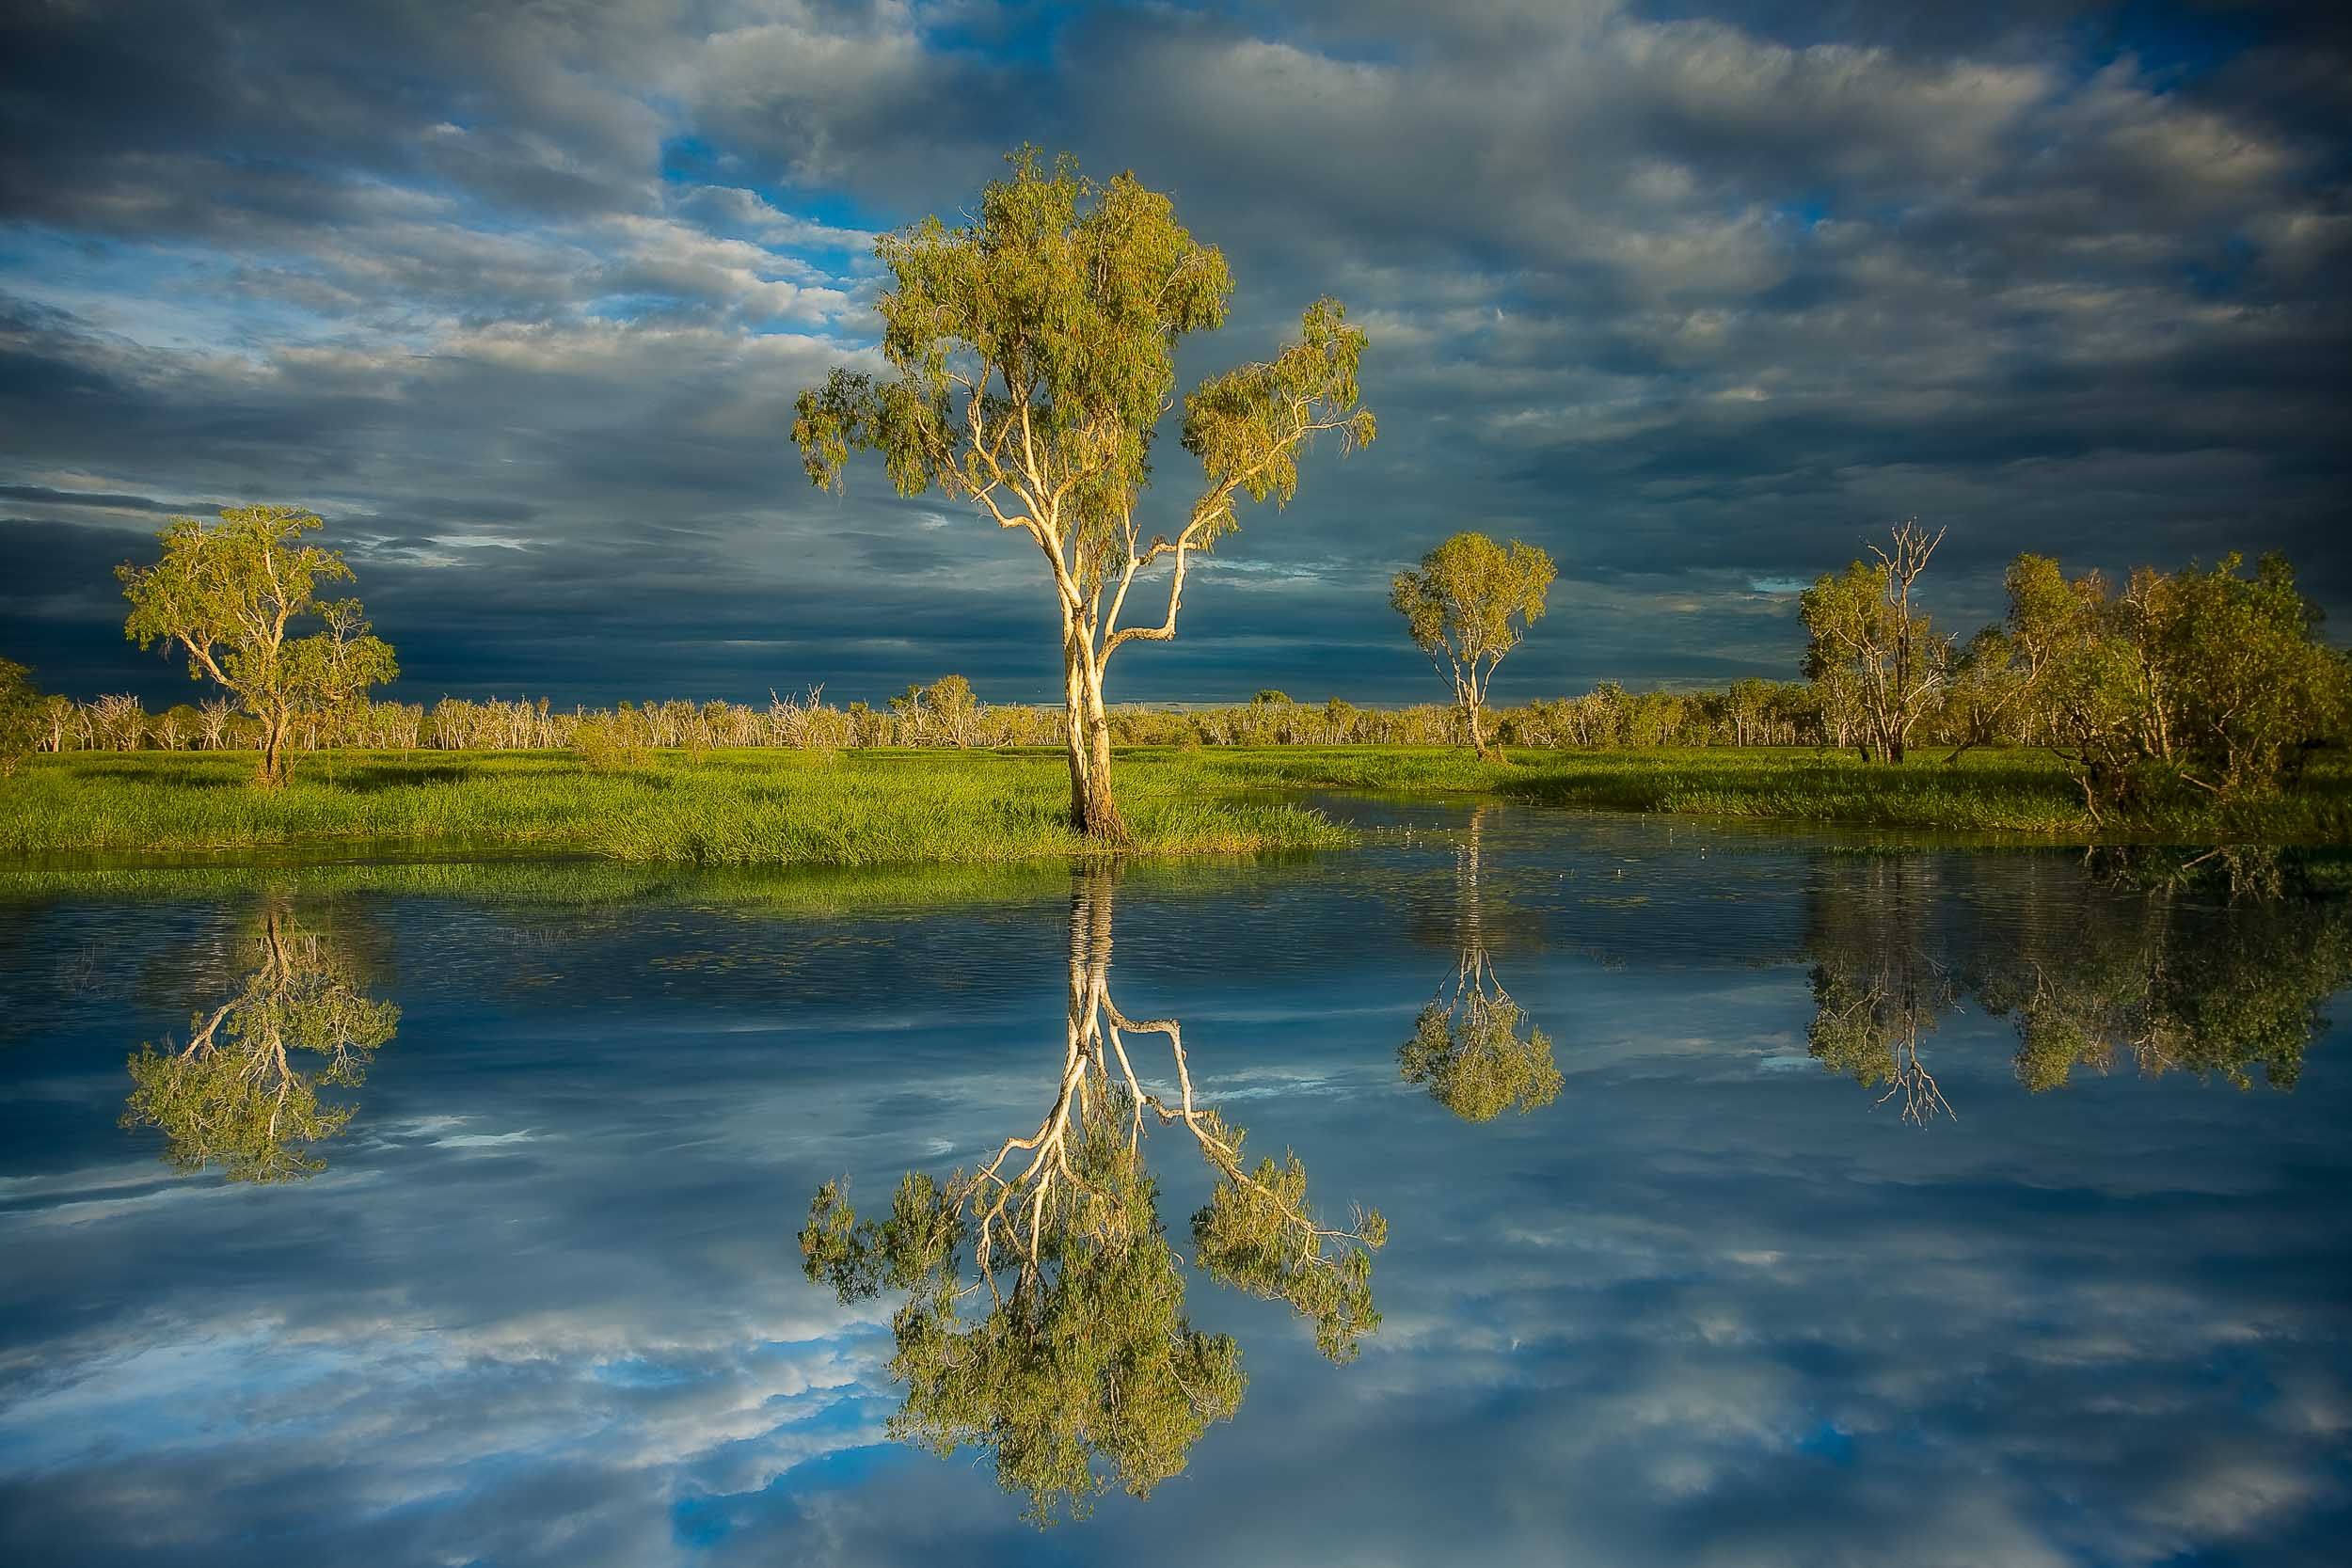 A    reflection    of a large    paperbark tree    by the water's edge in    Kakadu National Park   ,    Australia   .